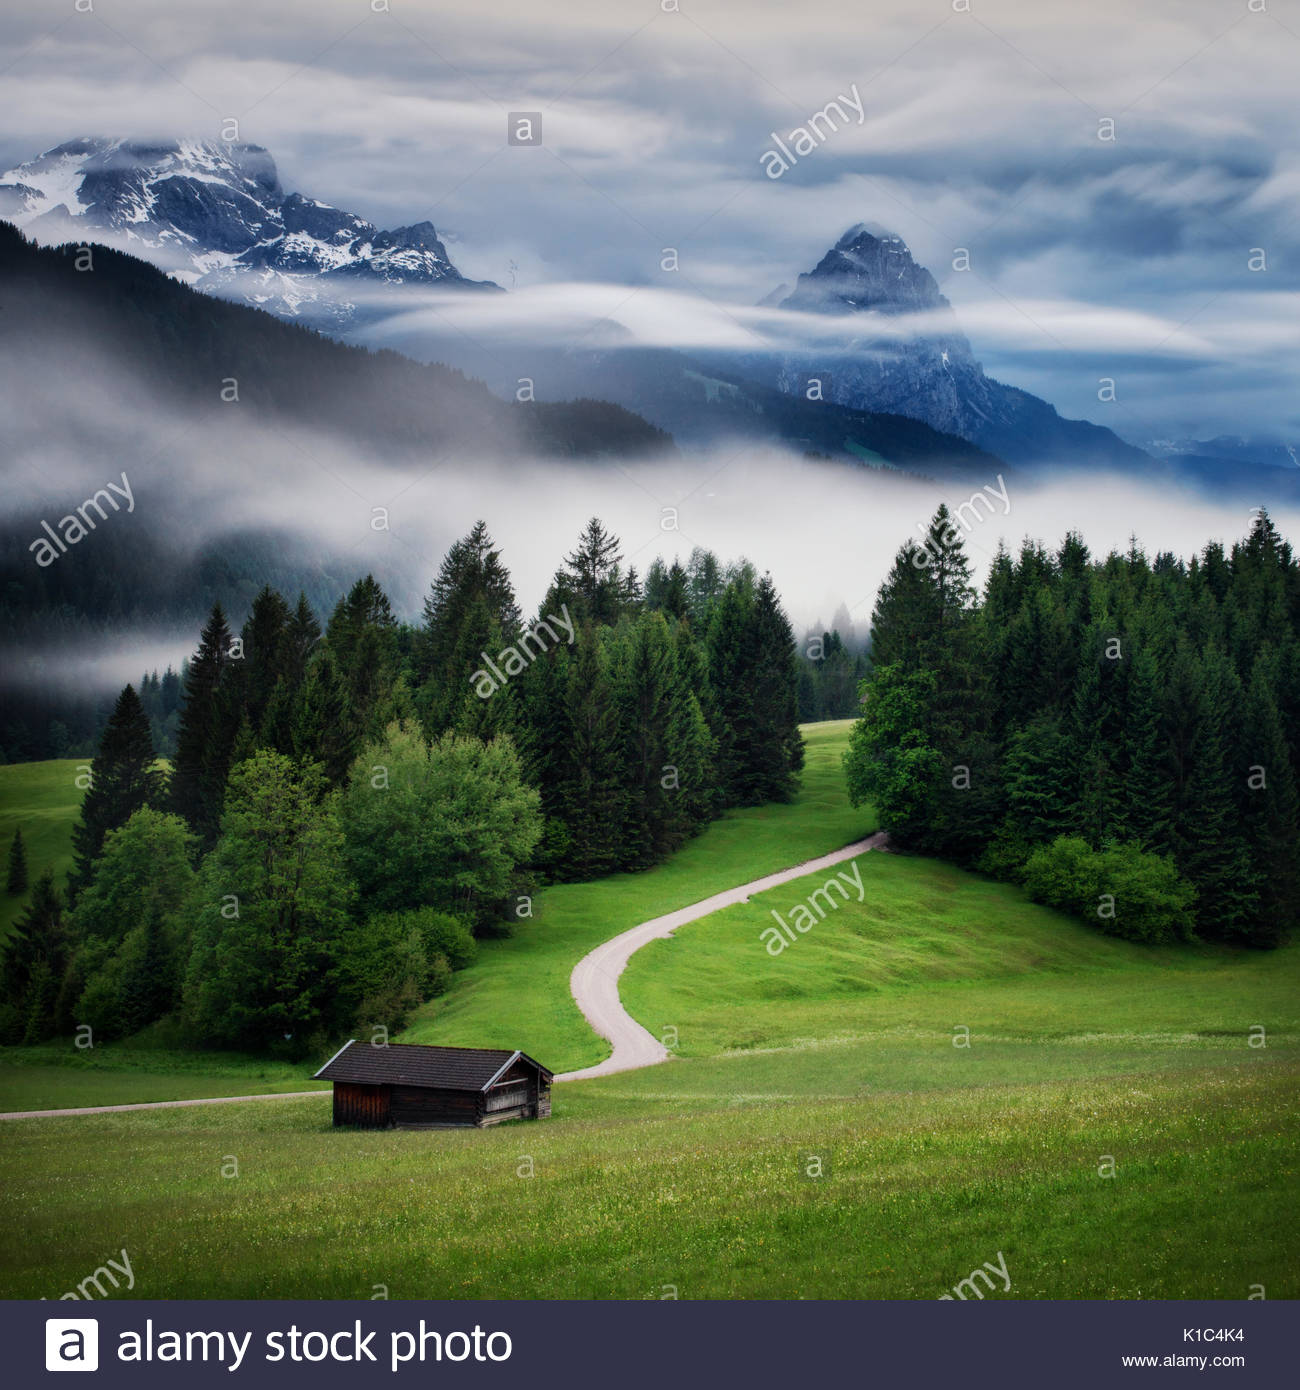 Wetterstein mountain during autumn rainy day with evening fog, Bavarian Alps, Bavaria, Germany. - Stock Image